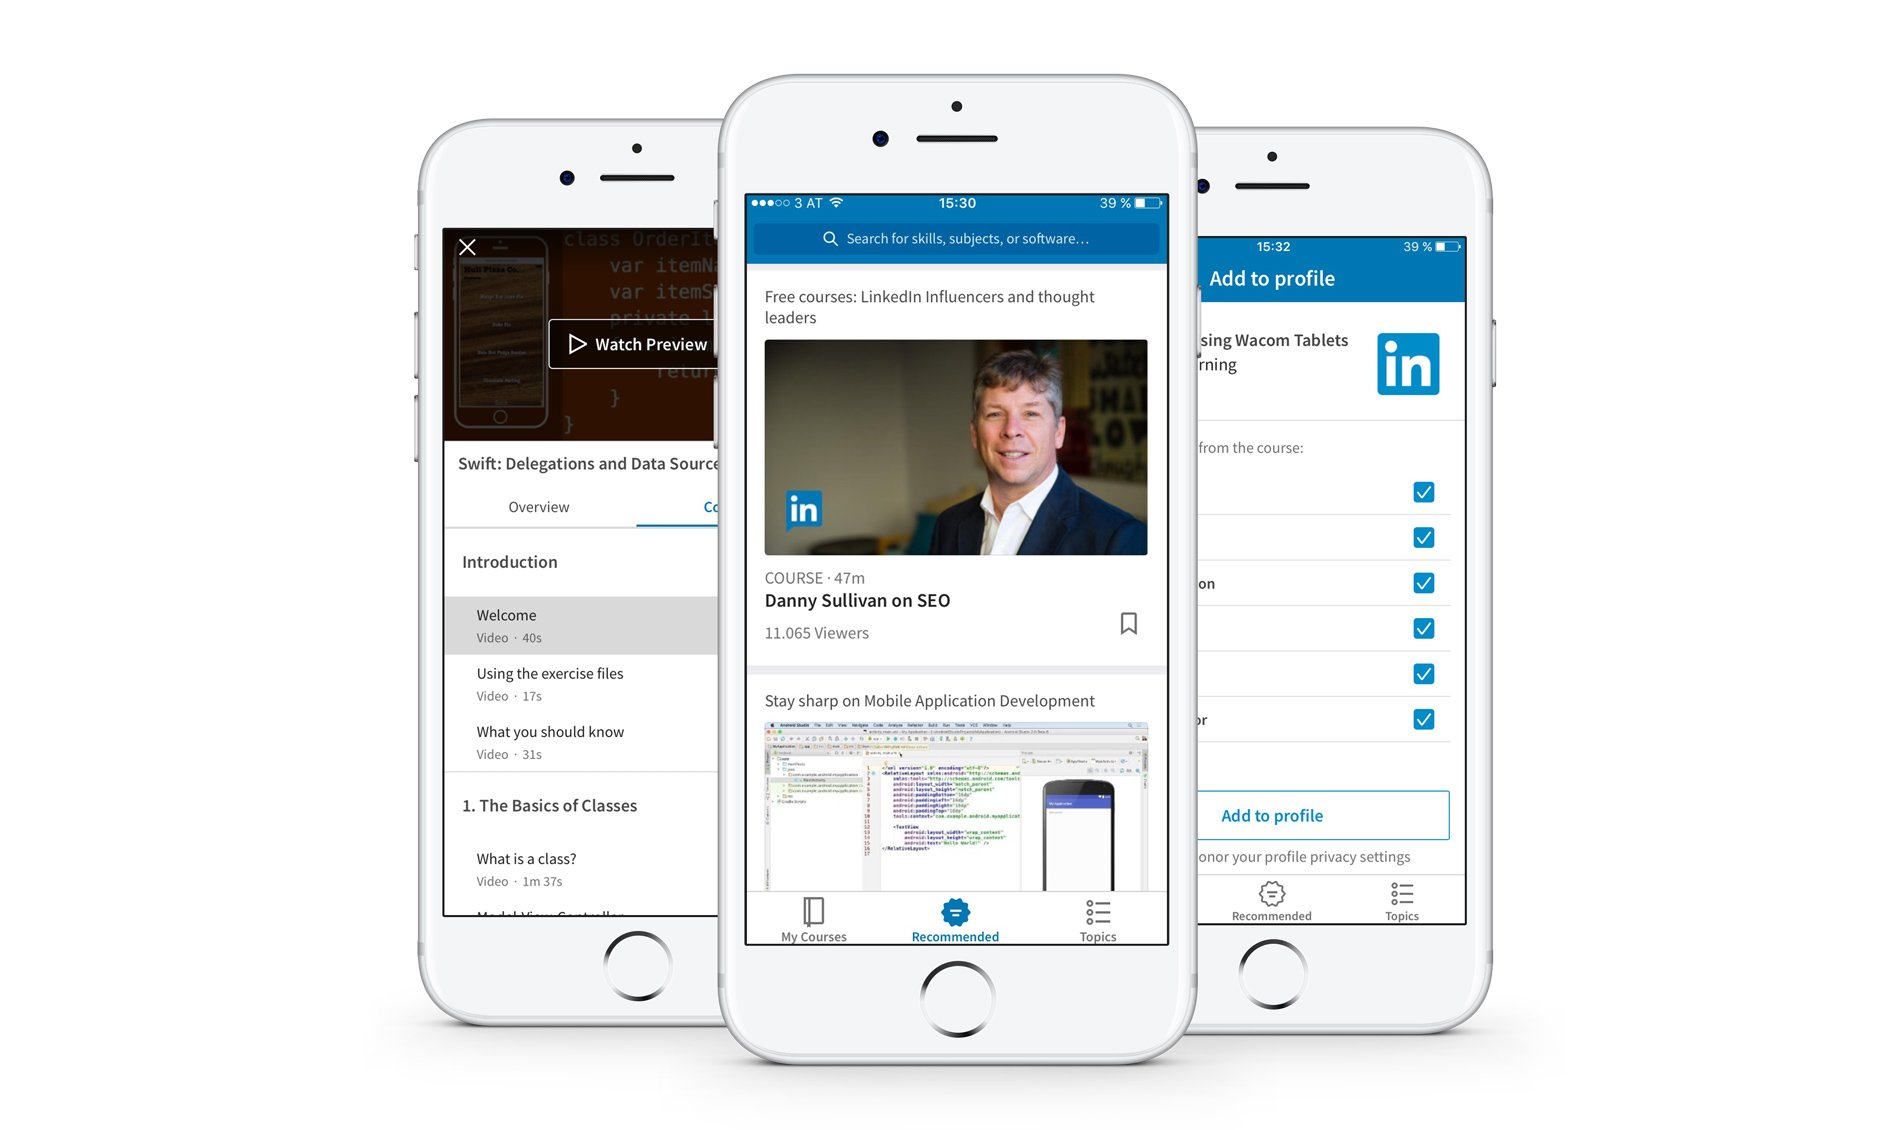 Linkedin learning iOS app screenshots.